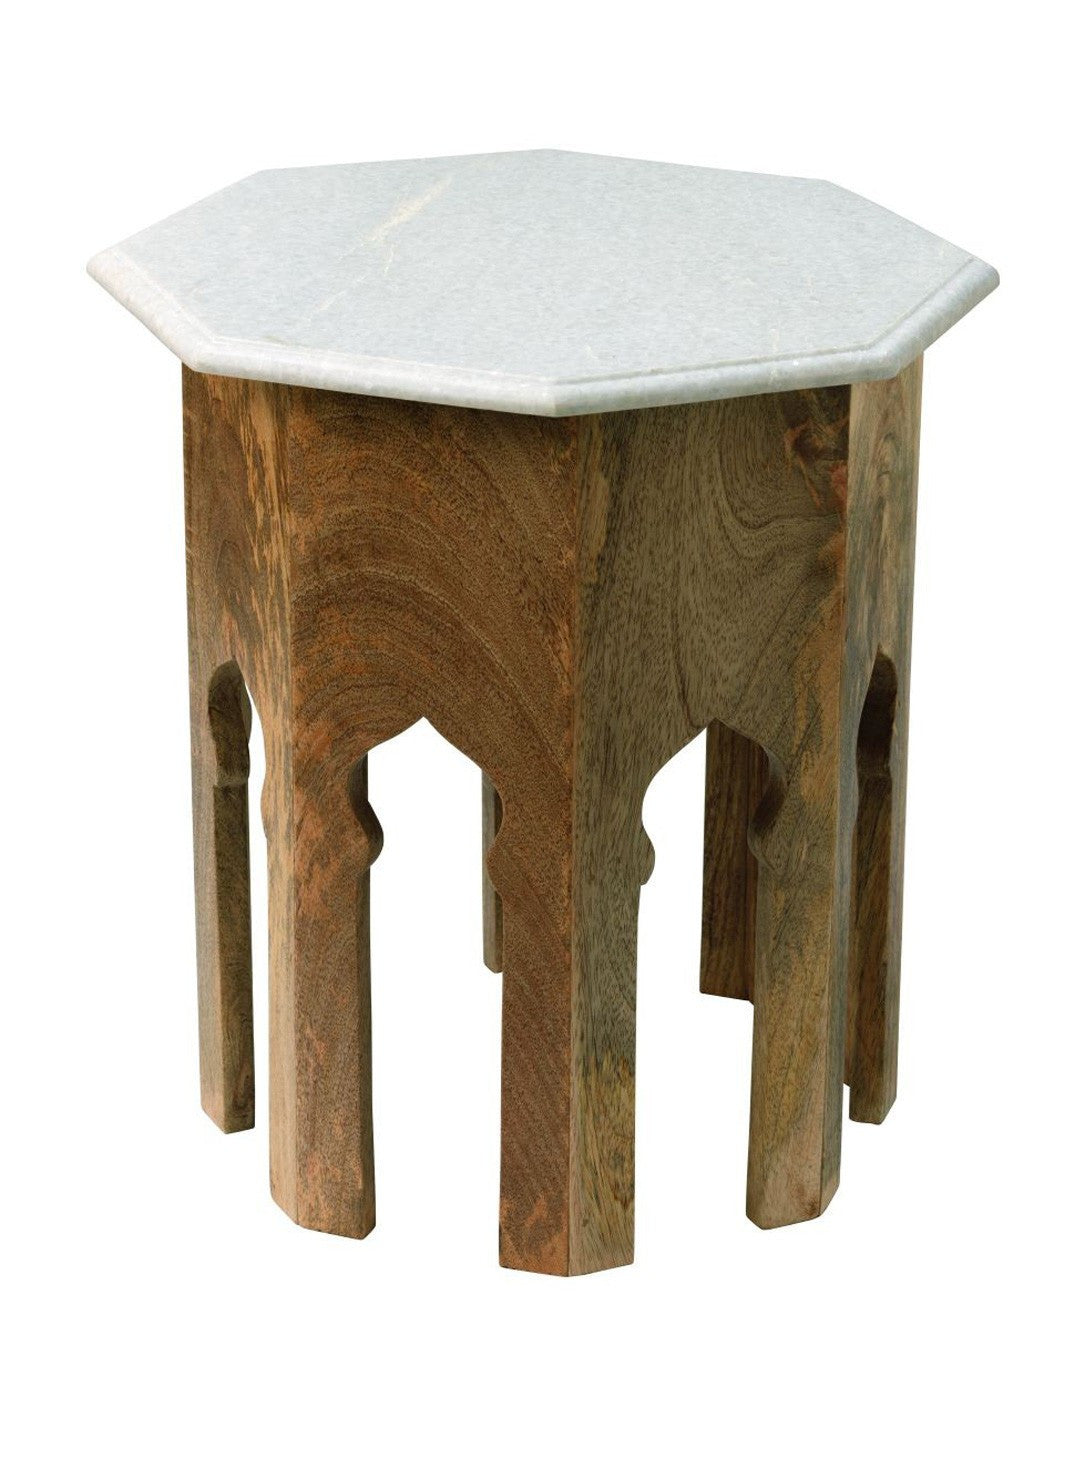 Jamie young atlas side table clayton gray home jamie young atlas side table white marble 1210 geotapseo Images